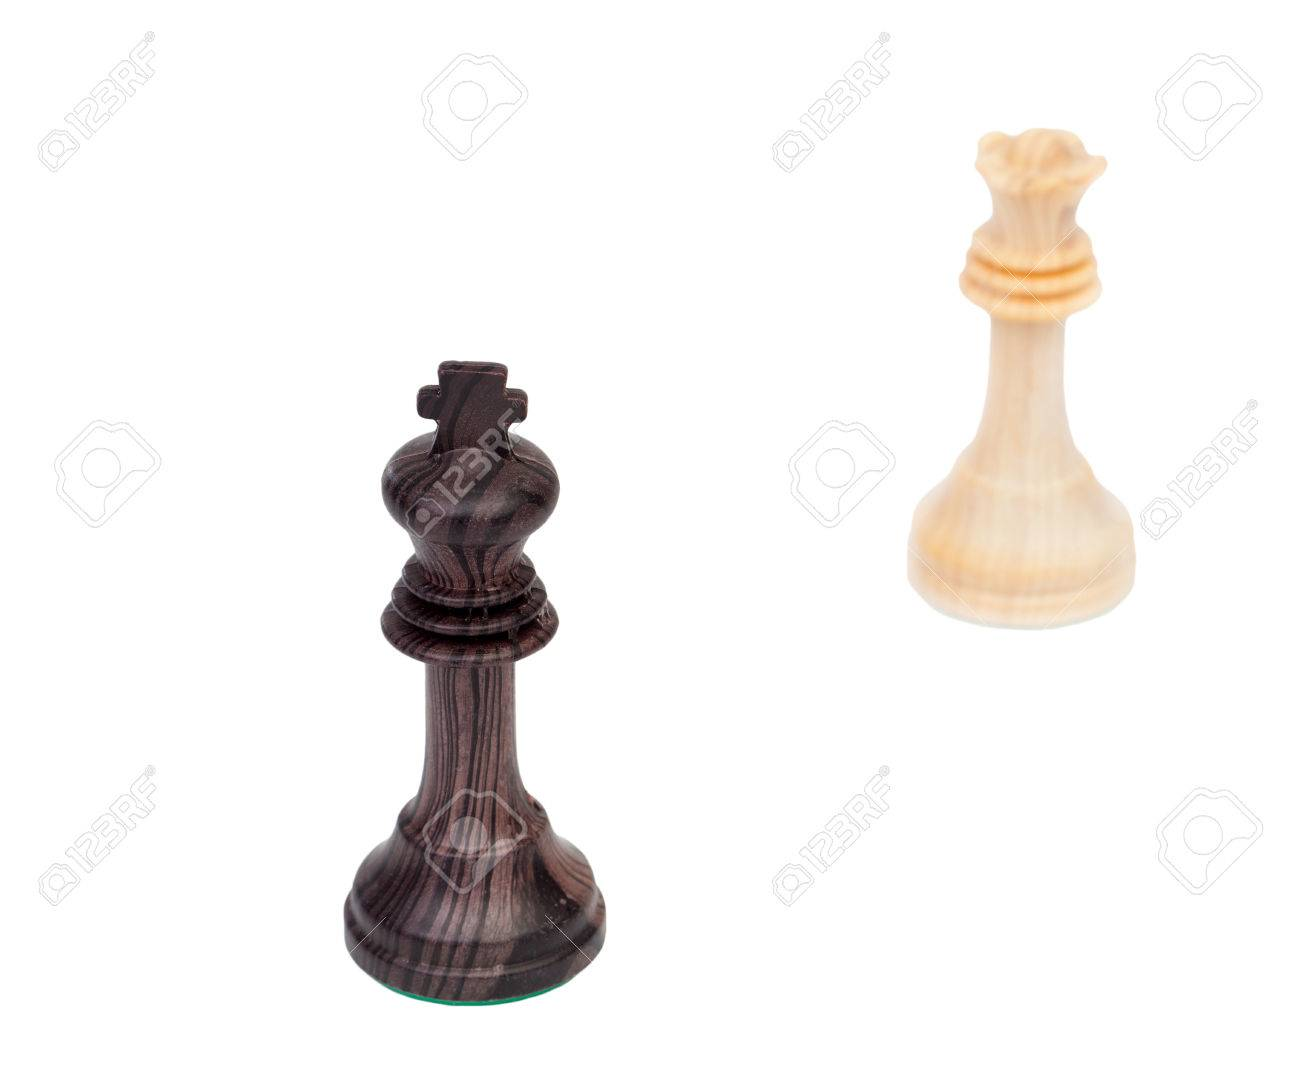 The King And Queen Faced Wooden Chess Pieces Isolated On A White